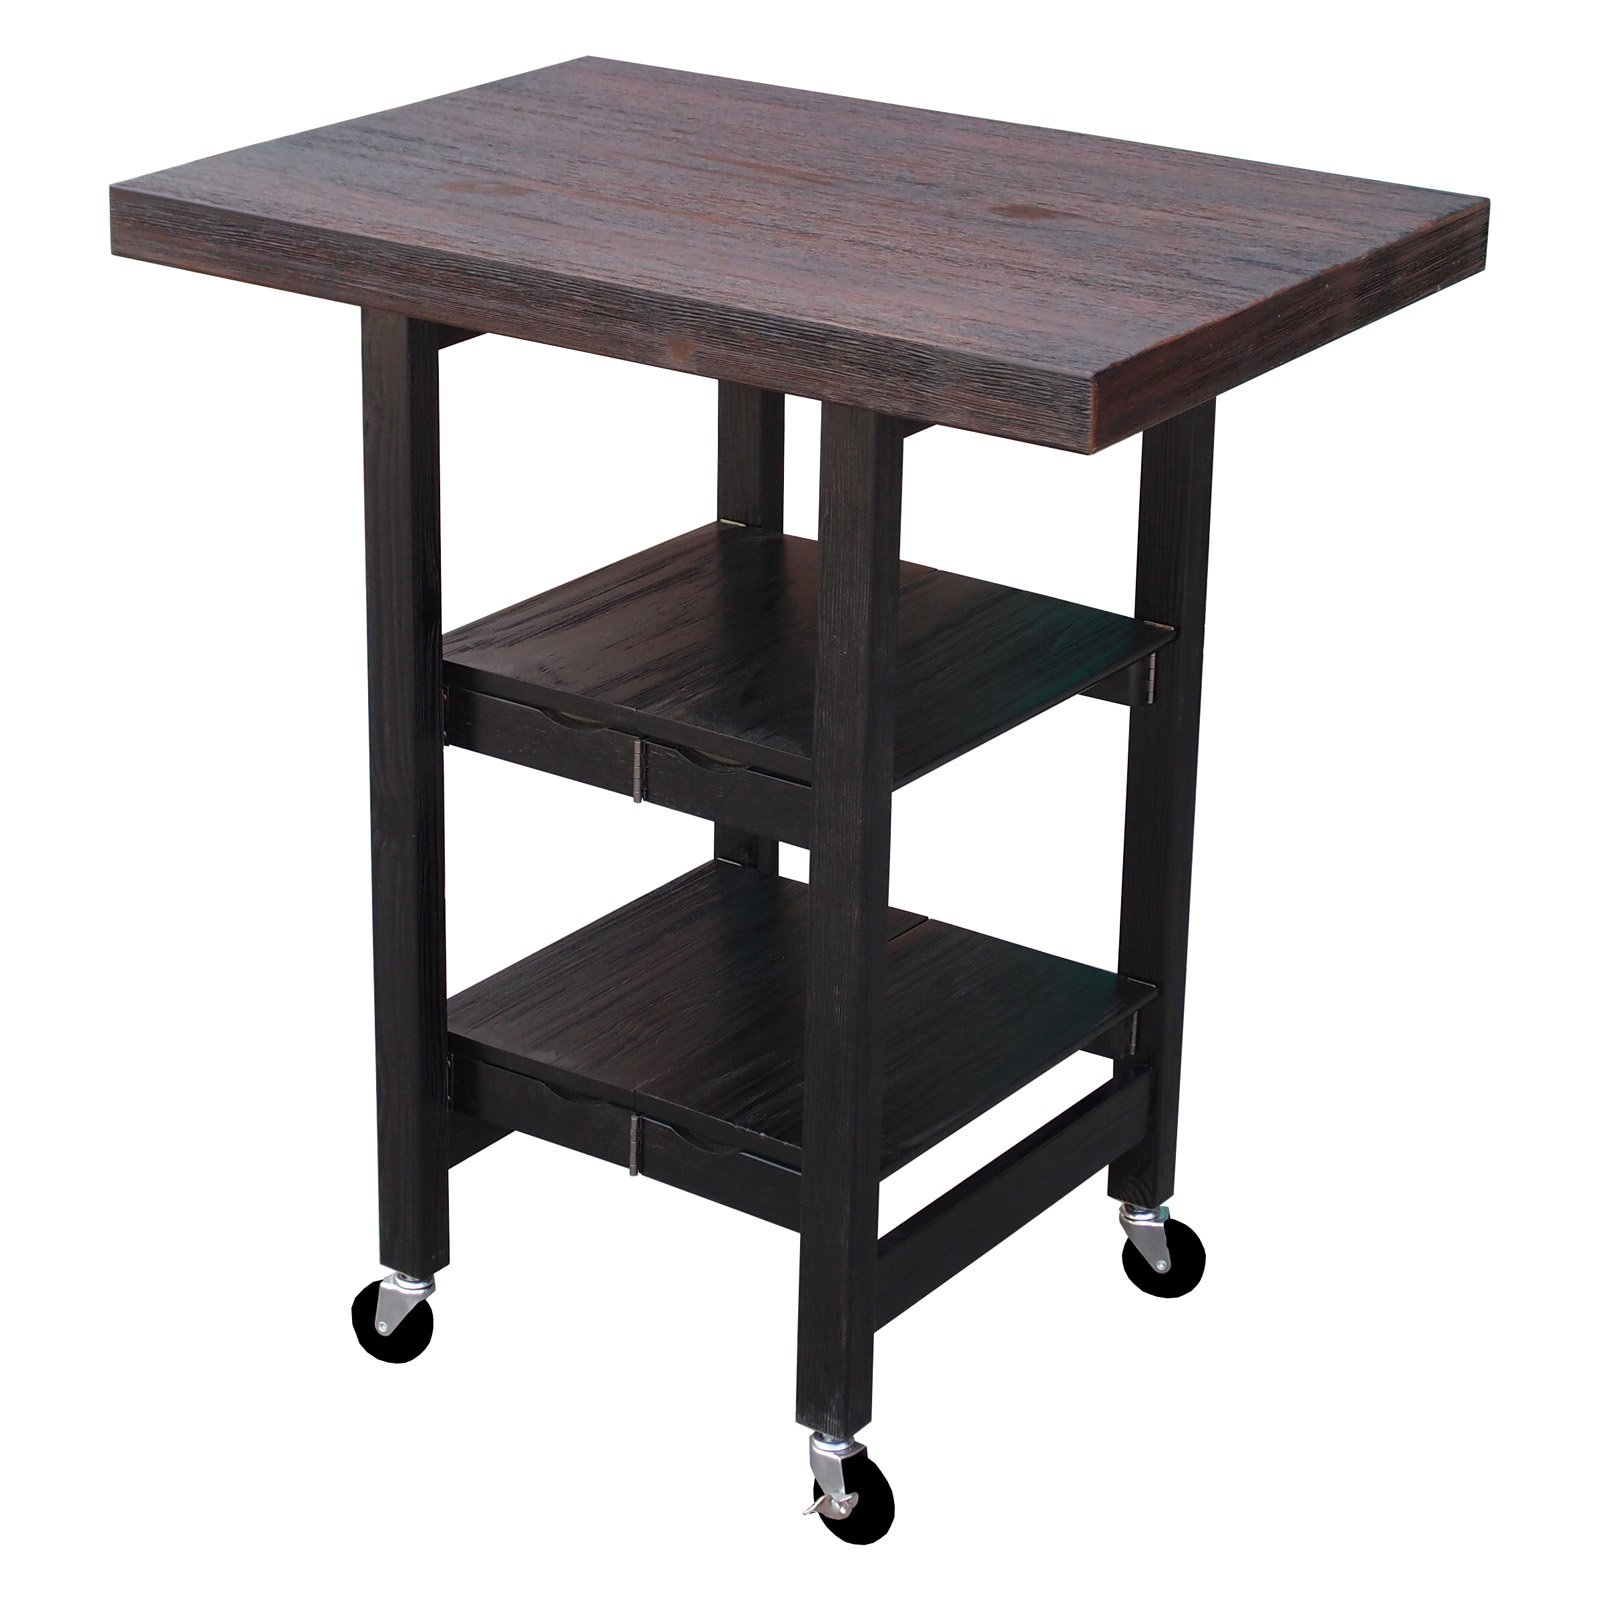 Oasis Concepts Textured Folding Kitchen Cart